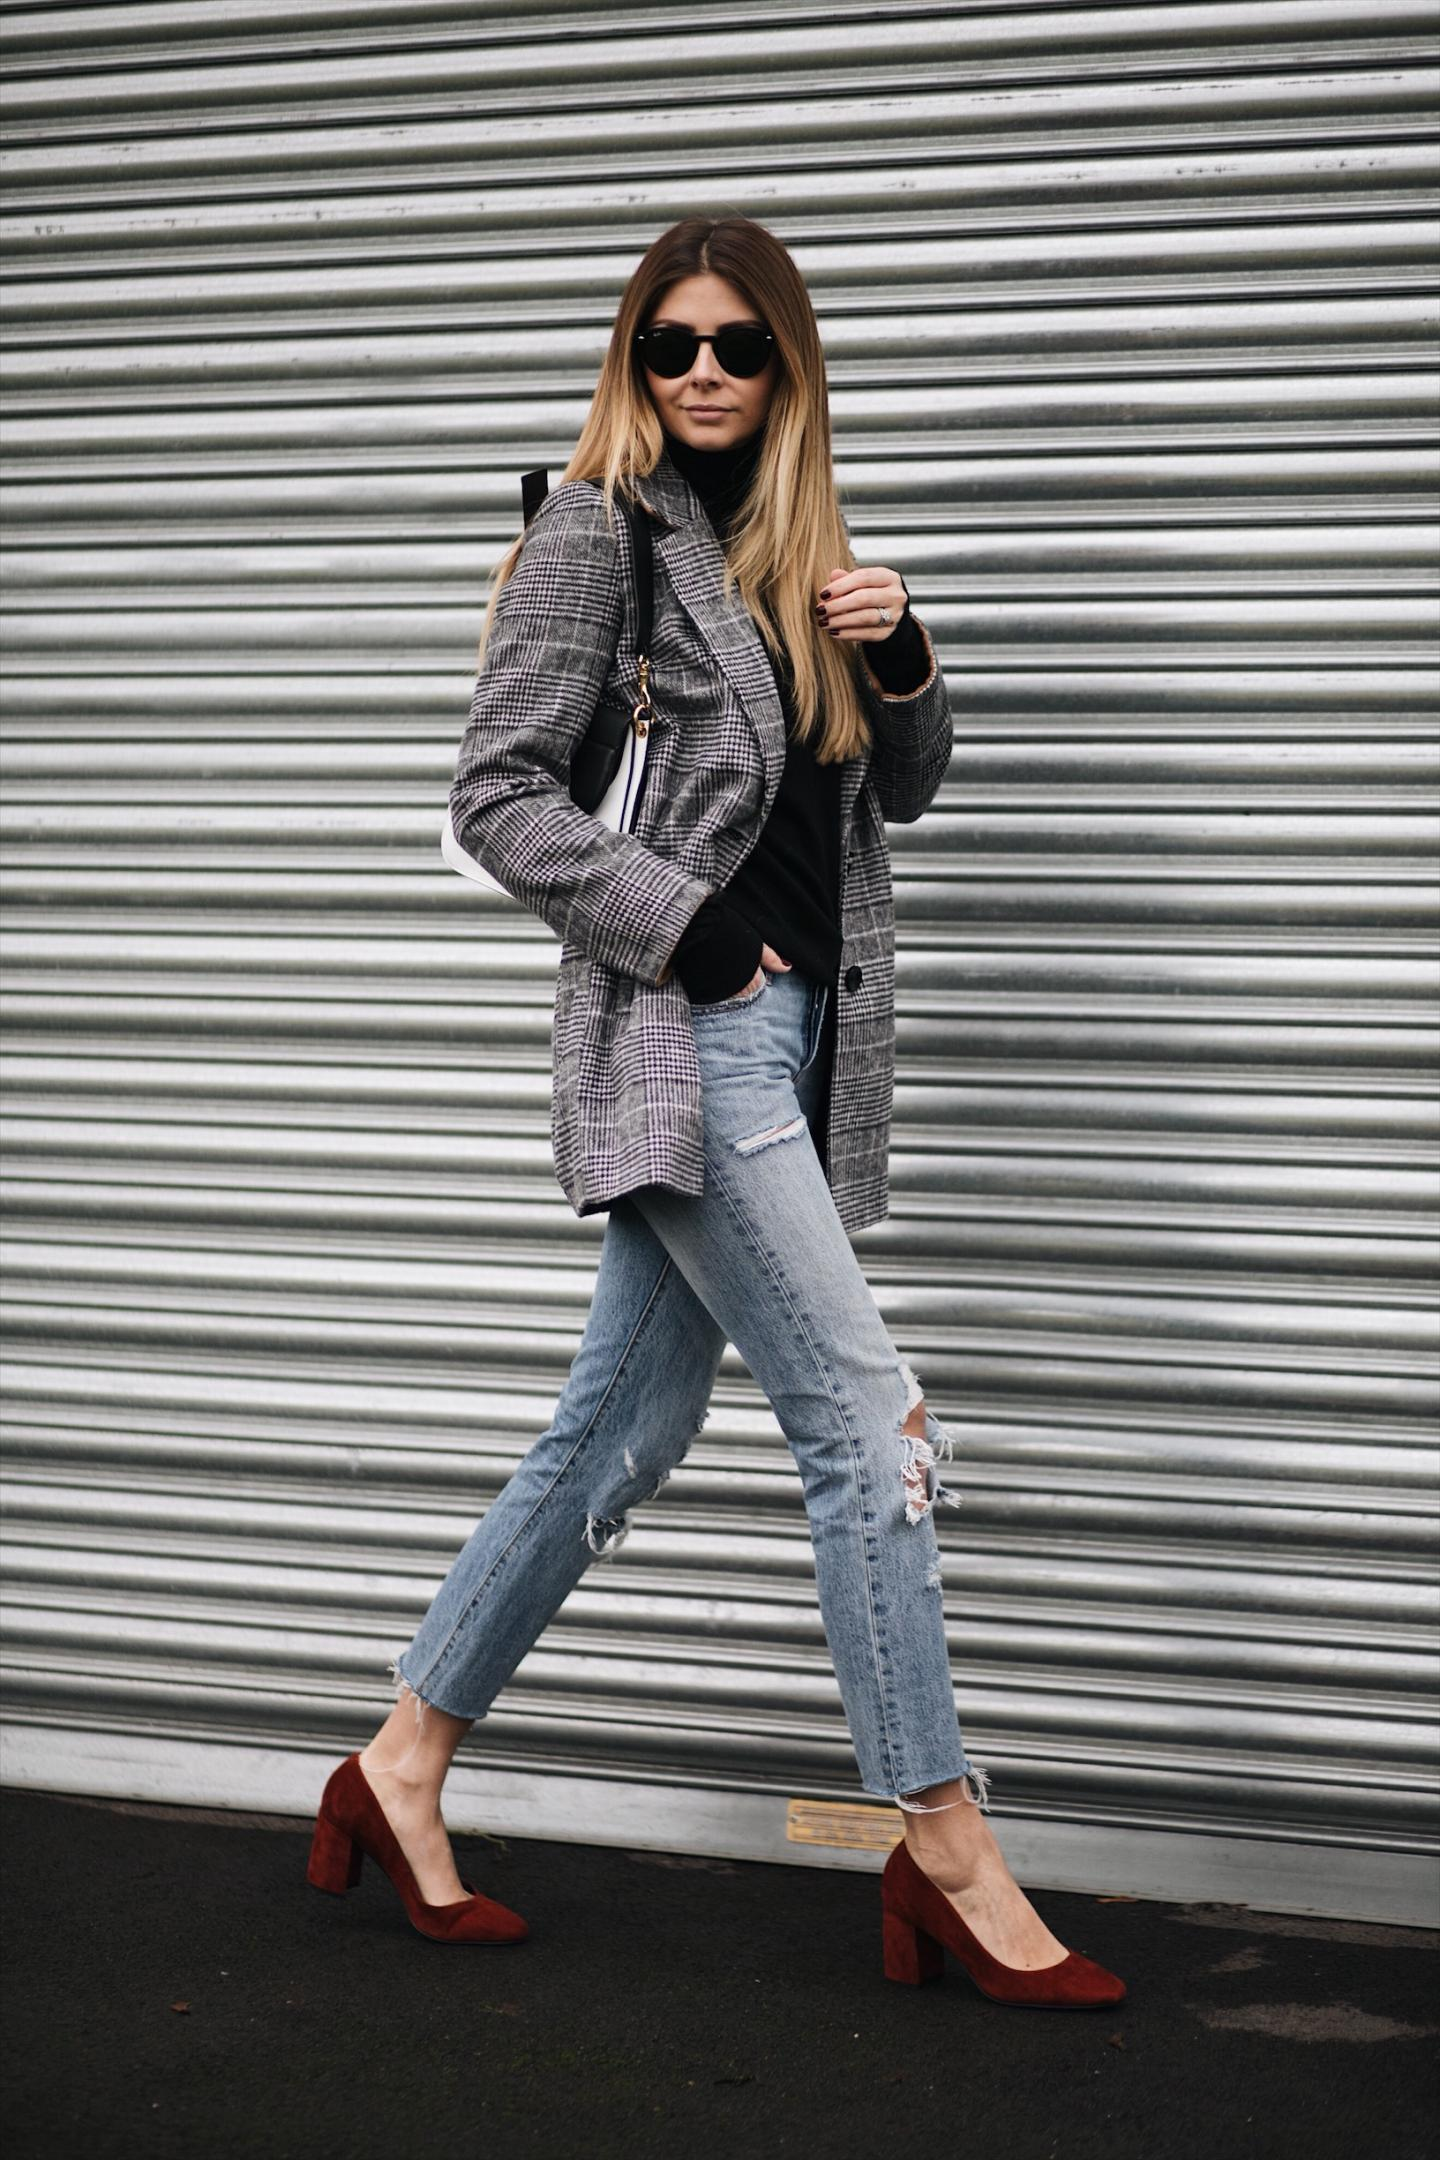 Emma Hill wears check blazer, black sweater, ripped Levis 501 jeans with raw hem, ruse suede block heel shoes, black white JW Anderson Pierce bag, winter outfit